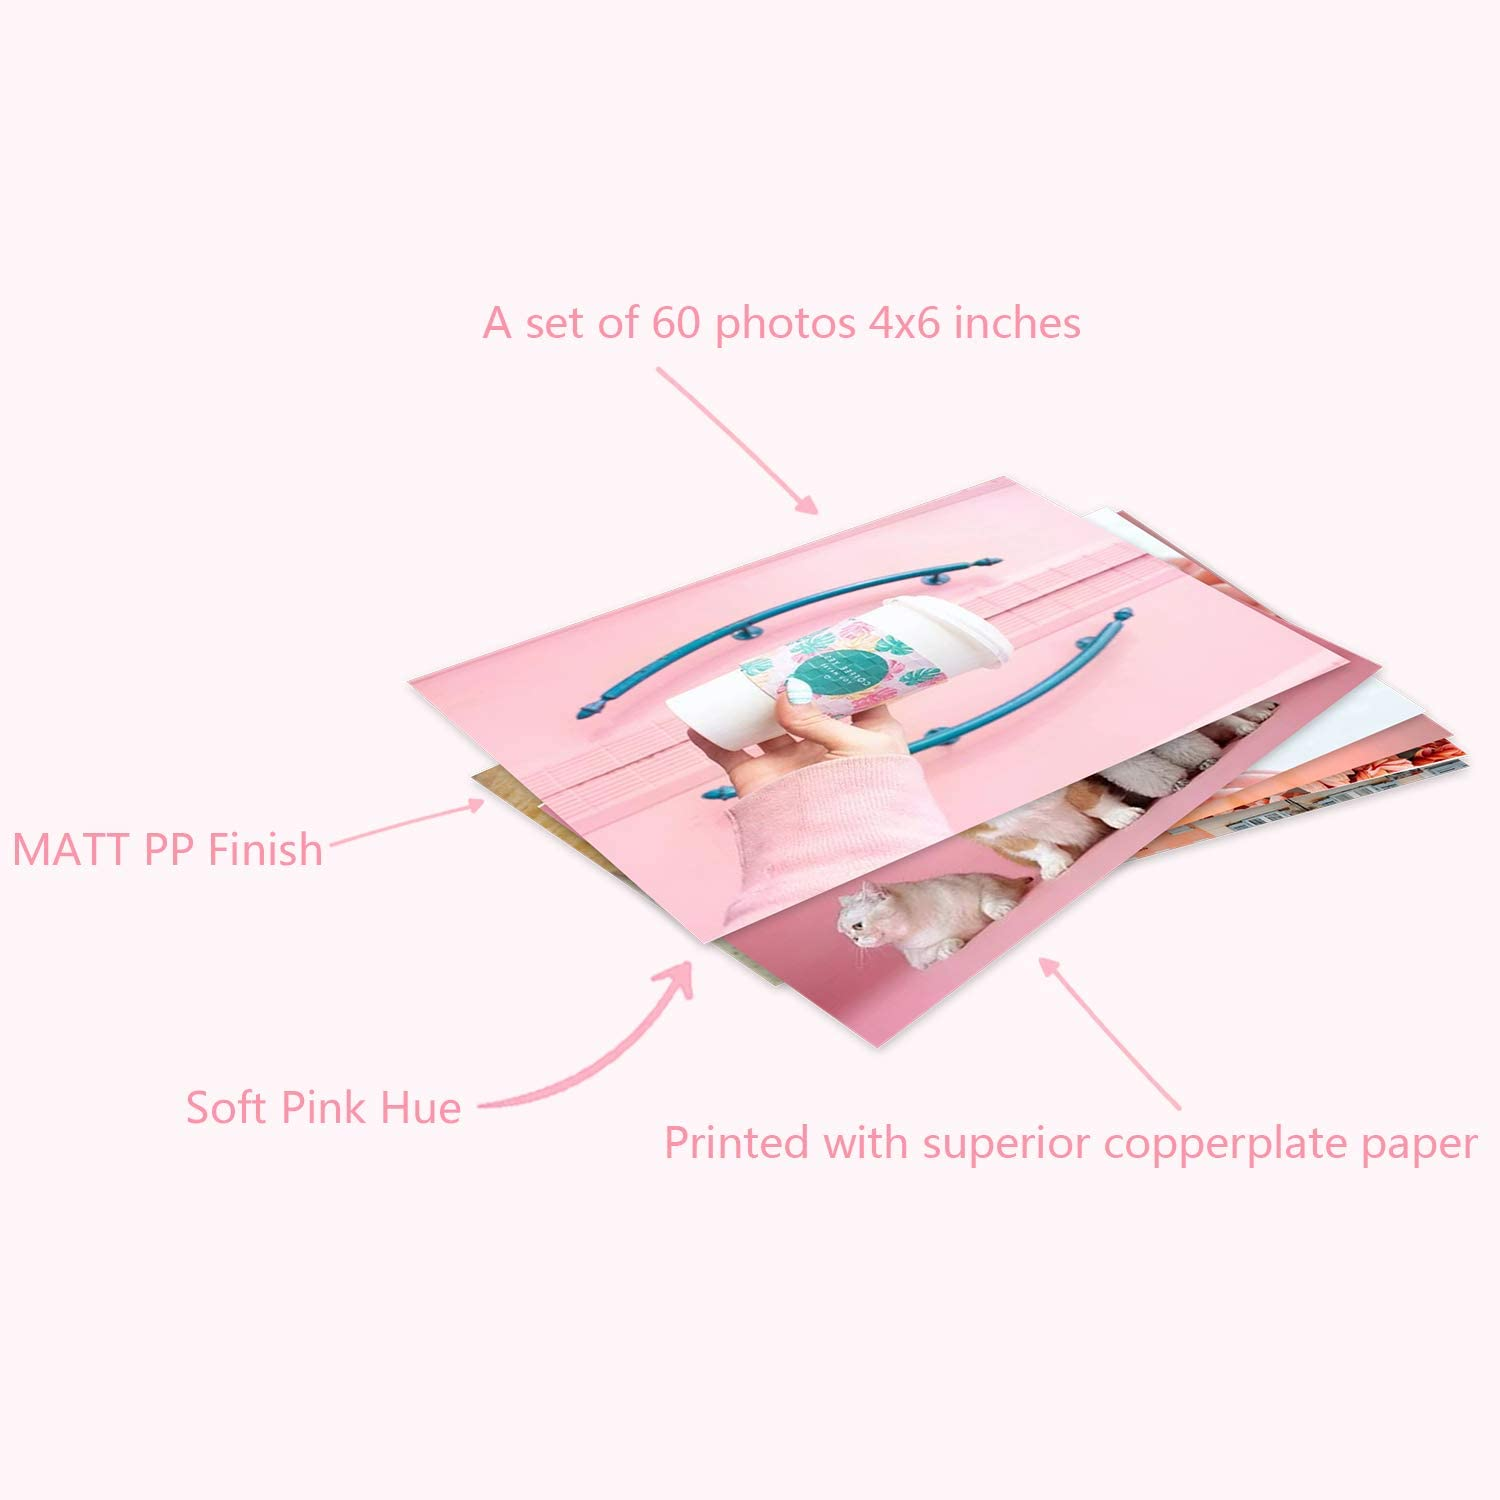 Wall Color Room Decor Small Print Poster Aesthetic Photo Collage Kit Pink 4x6 inches, Pink Set of 60 Aesthetic Pictures for Bedroom Wall Aesthetic Pictures Decor Collage Kit